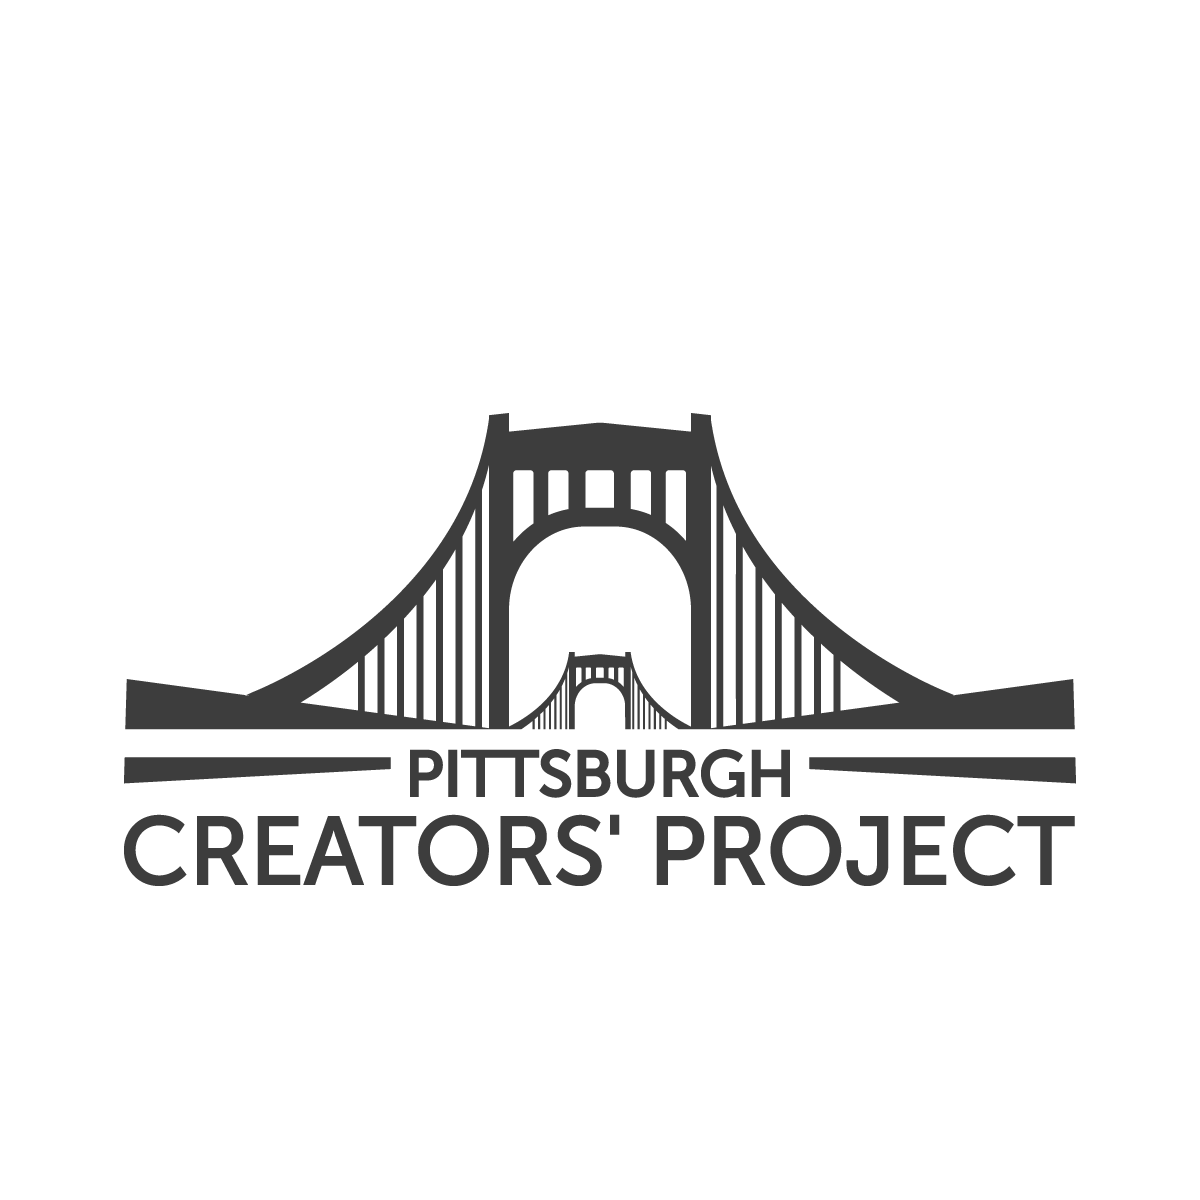 pittsburgh creators' project logo